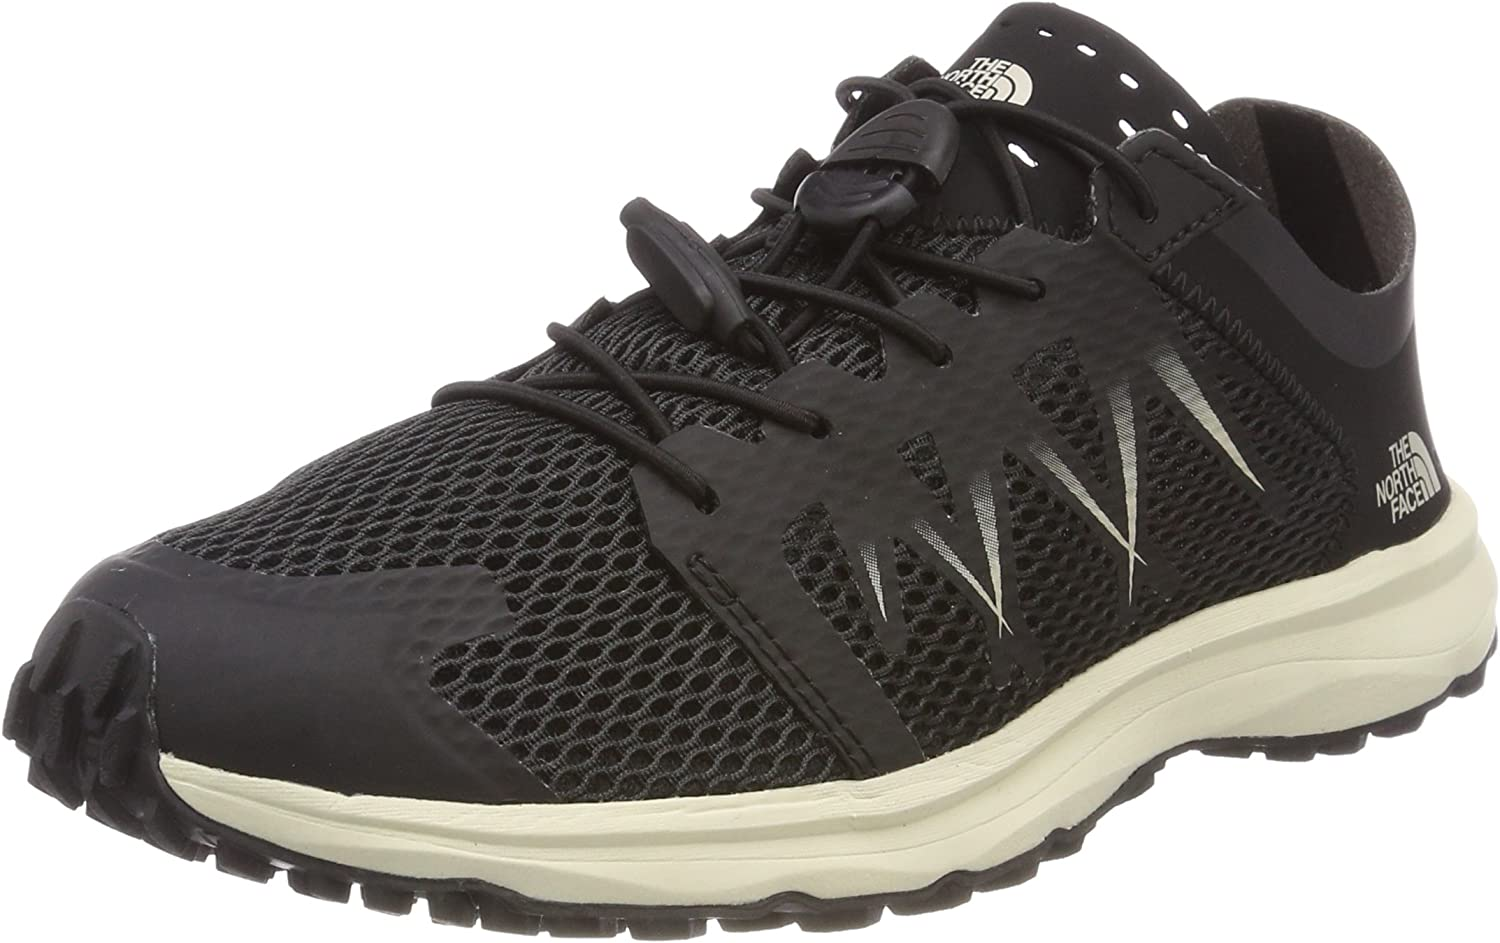 THE NORTH FACE Womens Litewave Flow Lace Low Top Bungee Walking shoes